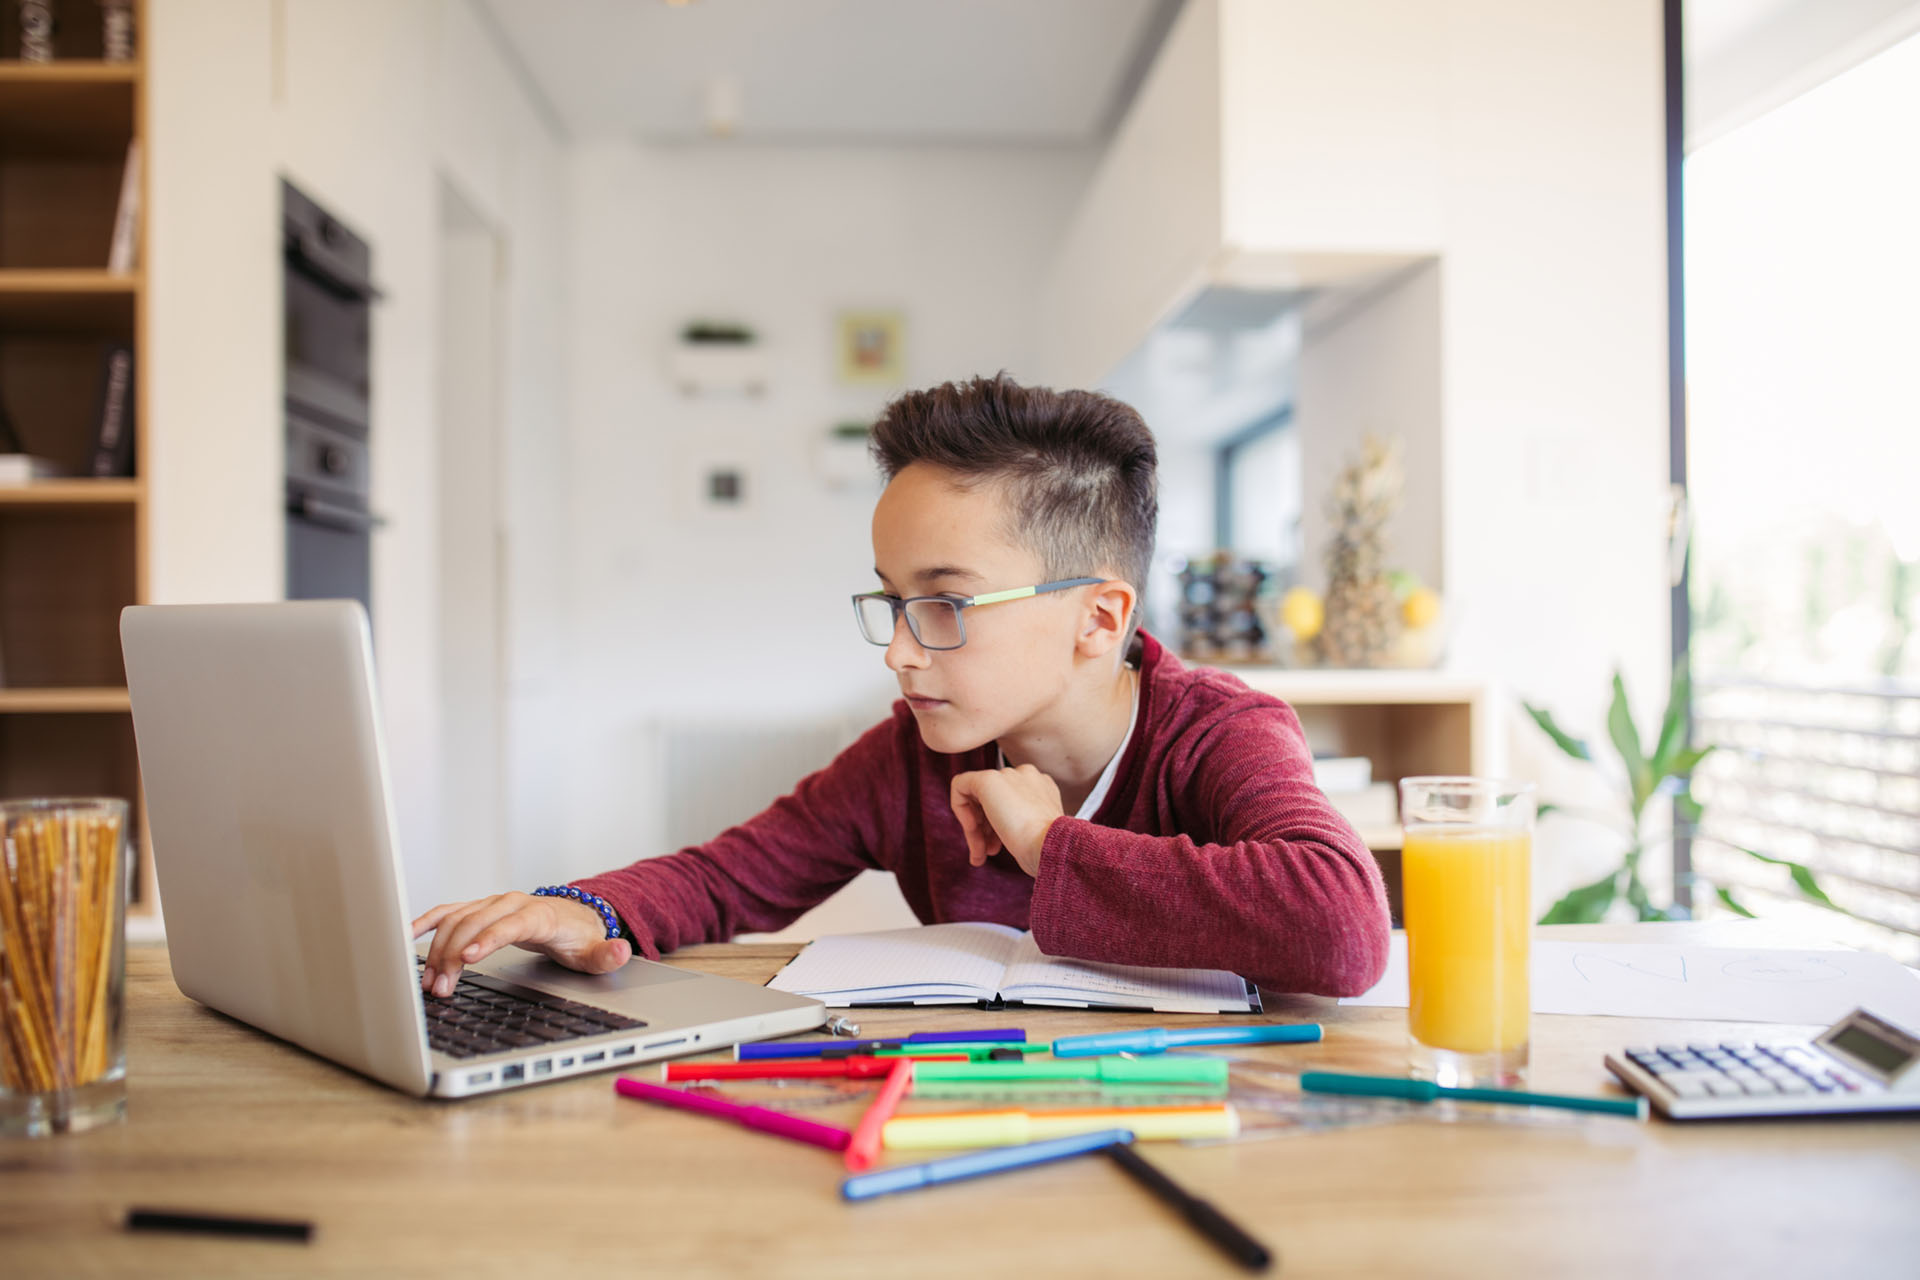 Student working on a laptop and taking classes online at home